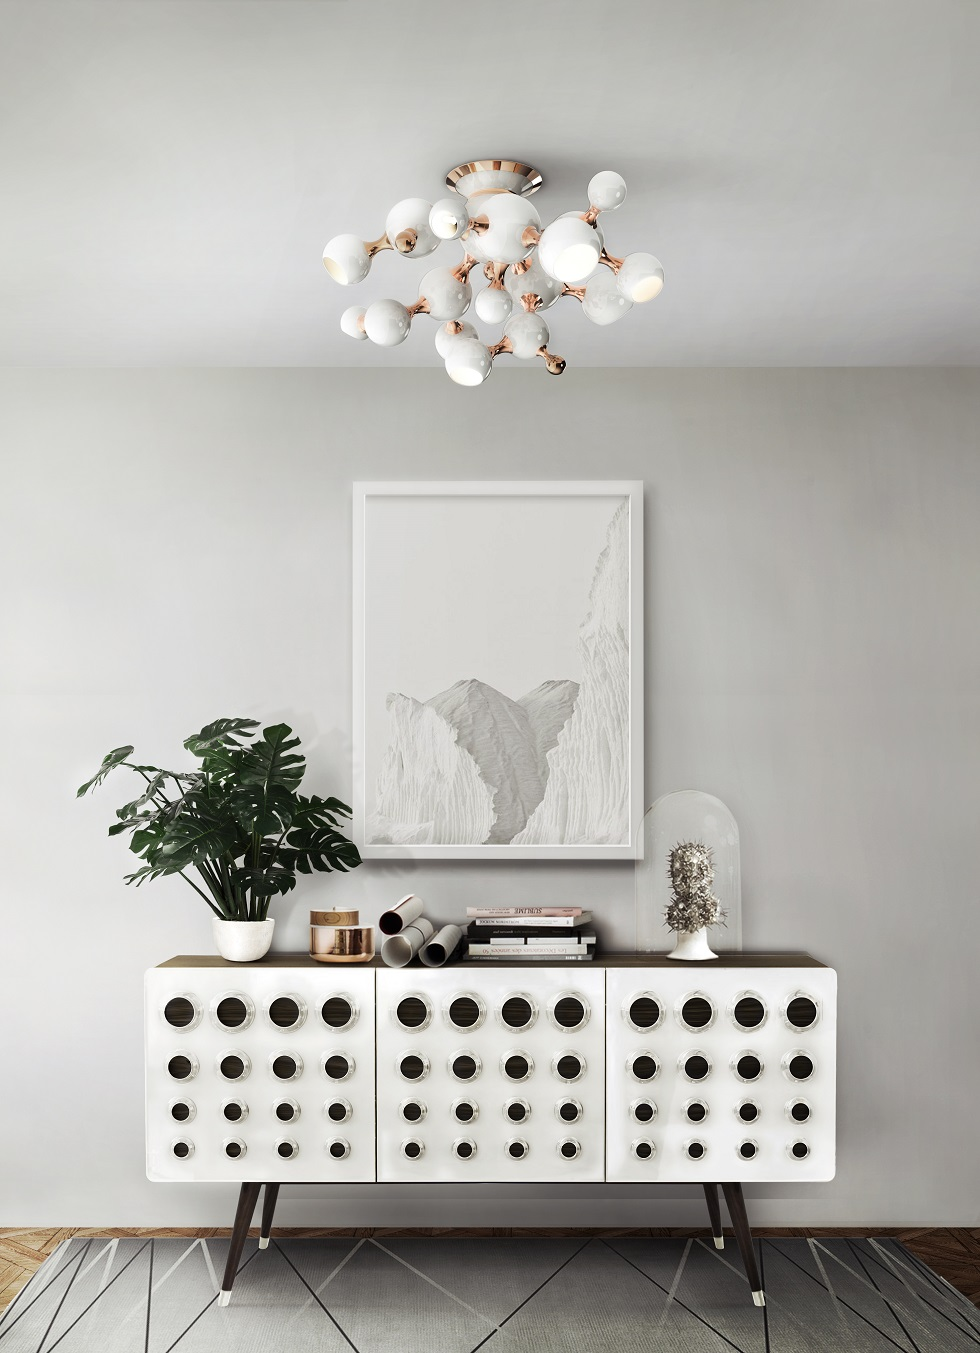 Mid-Century modern suspension lighting that you will love atomic suspension lighting Mid-Century modern suspension lighting that you will love Mid Century modern suspension lighting that you will love atomic 2